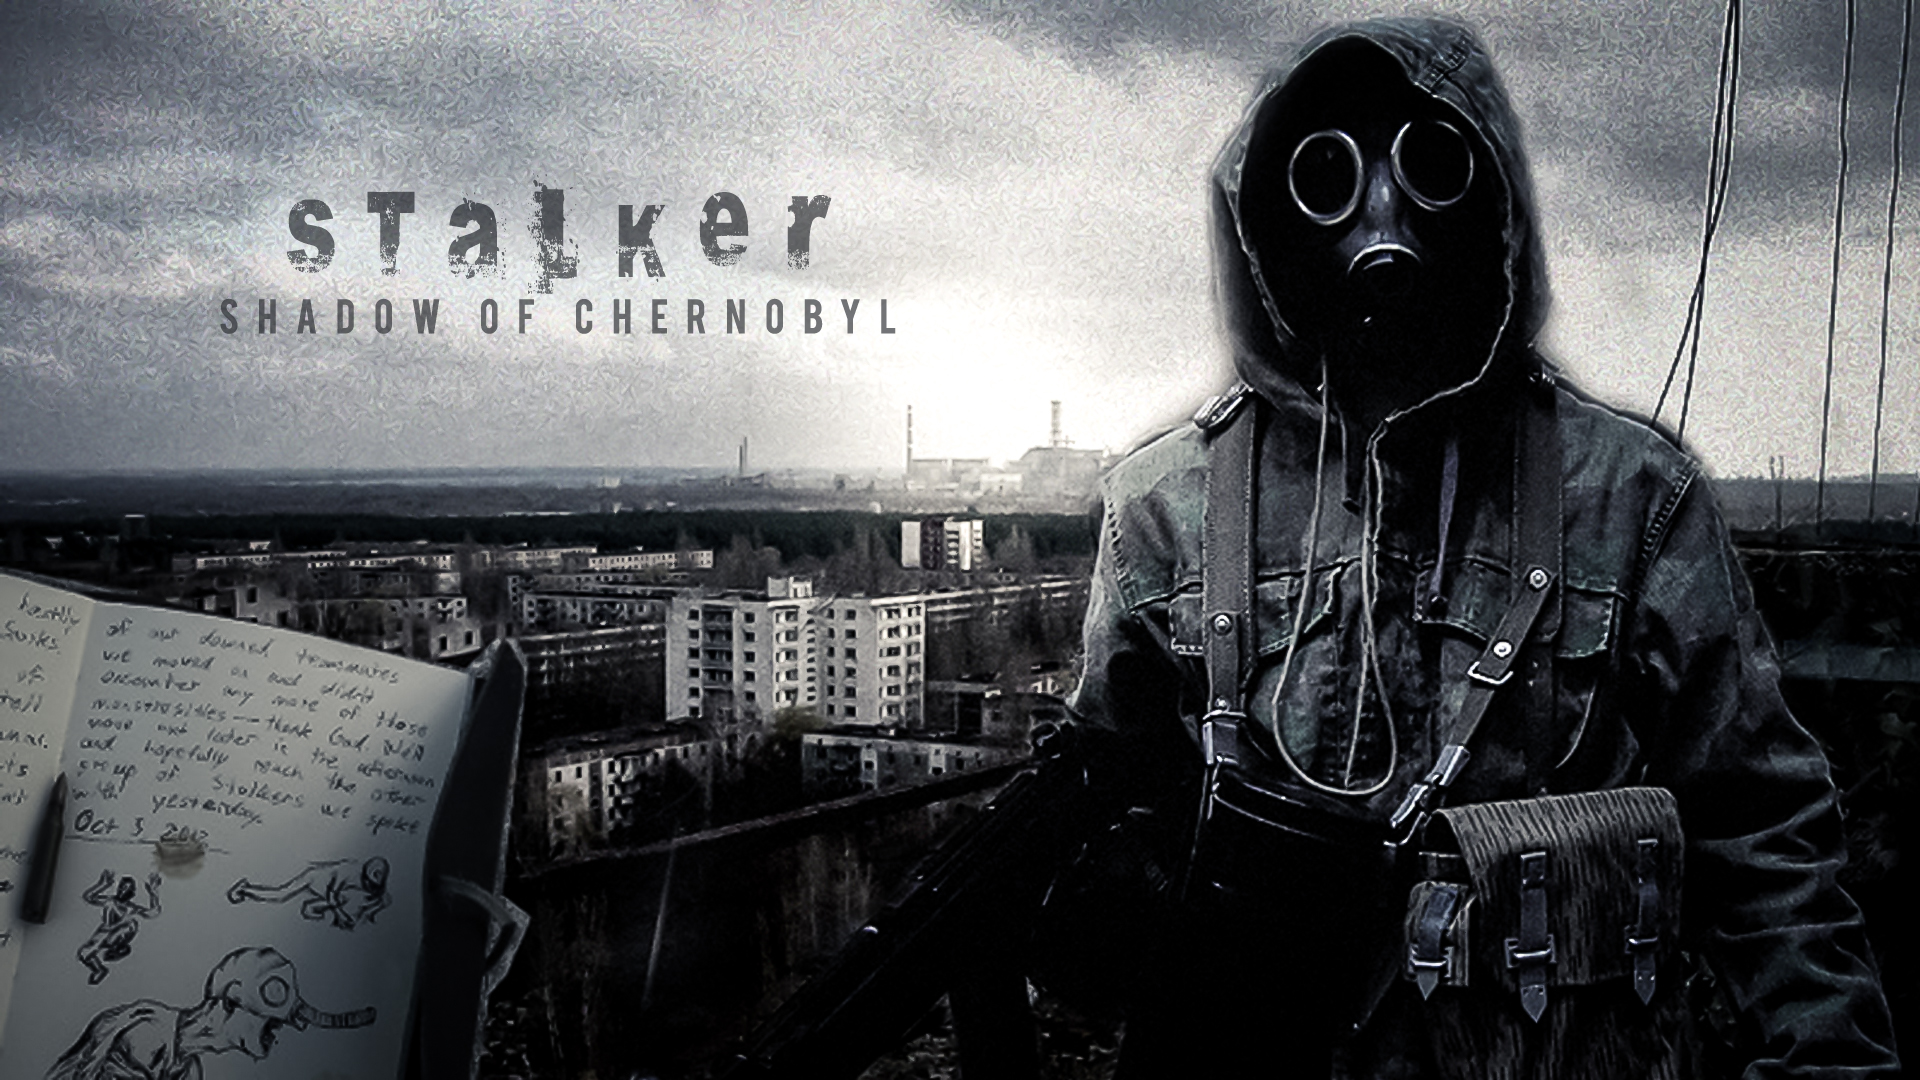 Stalker 39021643 Wallpaper For Free